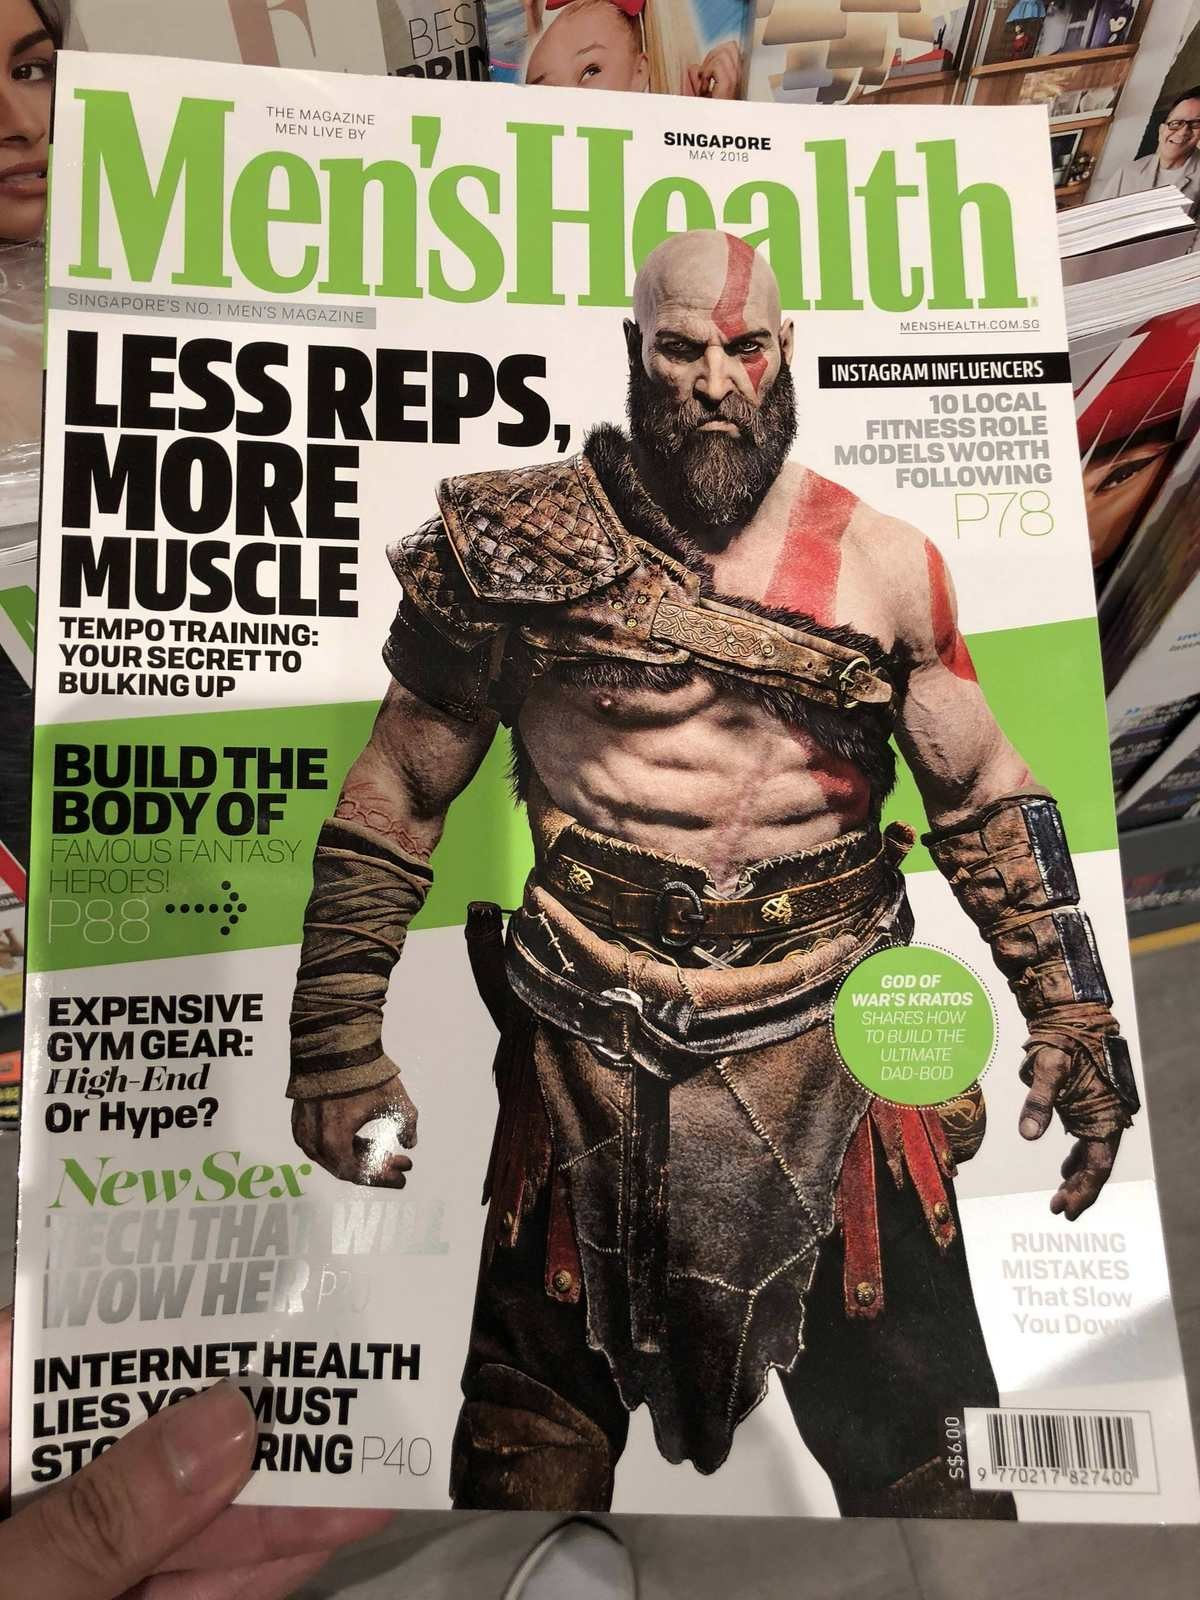 Kratos is on this months cover of Men's Health. join list: VideoGameHumor (1686 subs)Mention Clicks: 564539Msgs Sent: 5309451Mention History. THE MAGAZINE MEN w